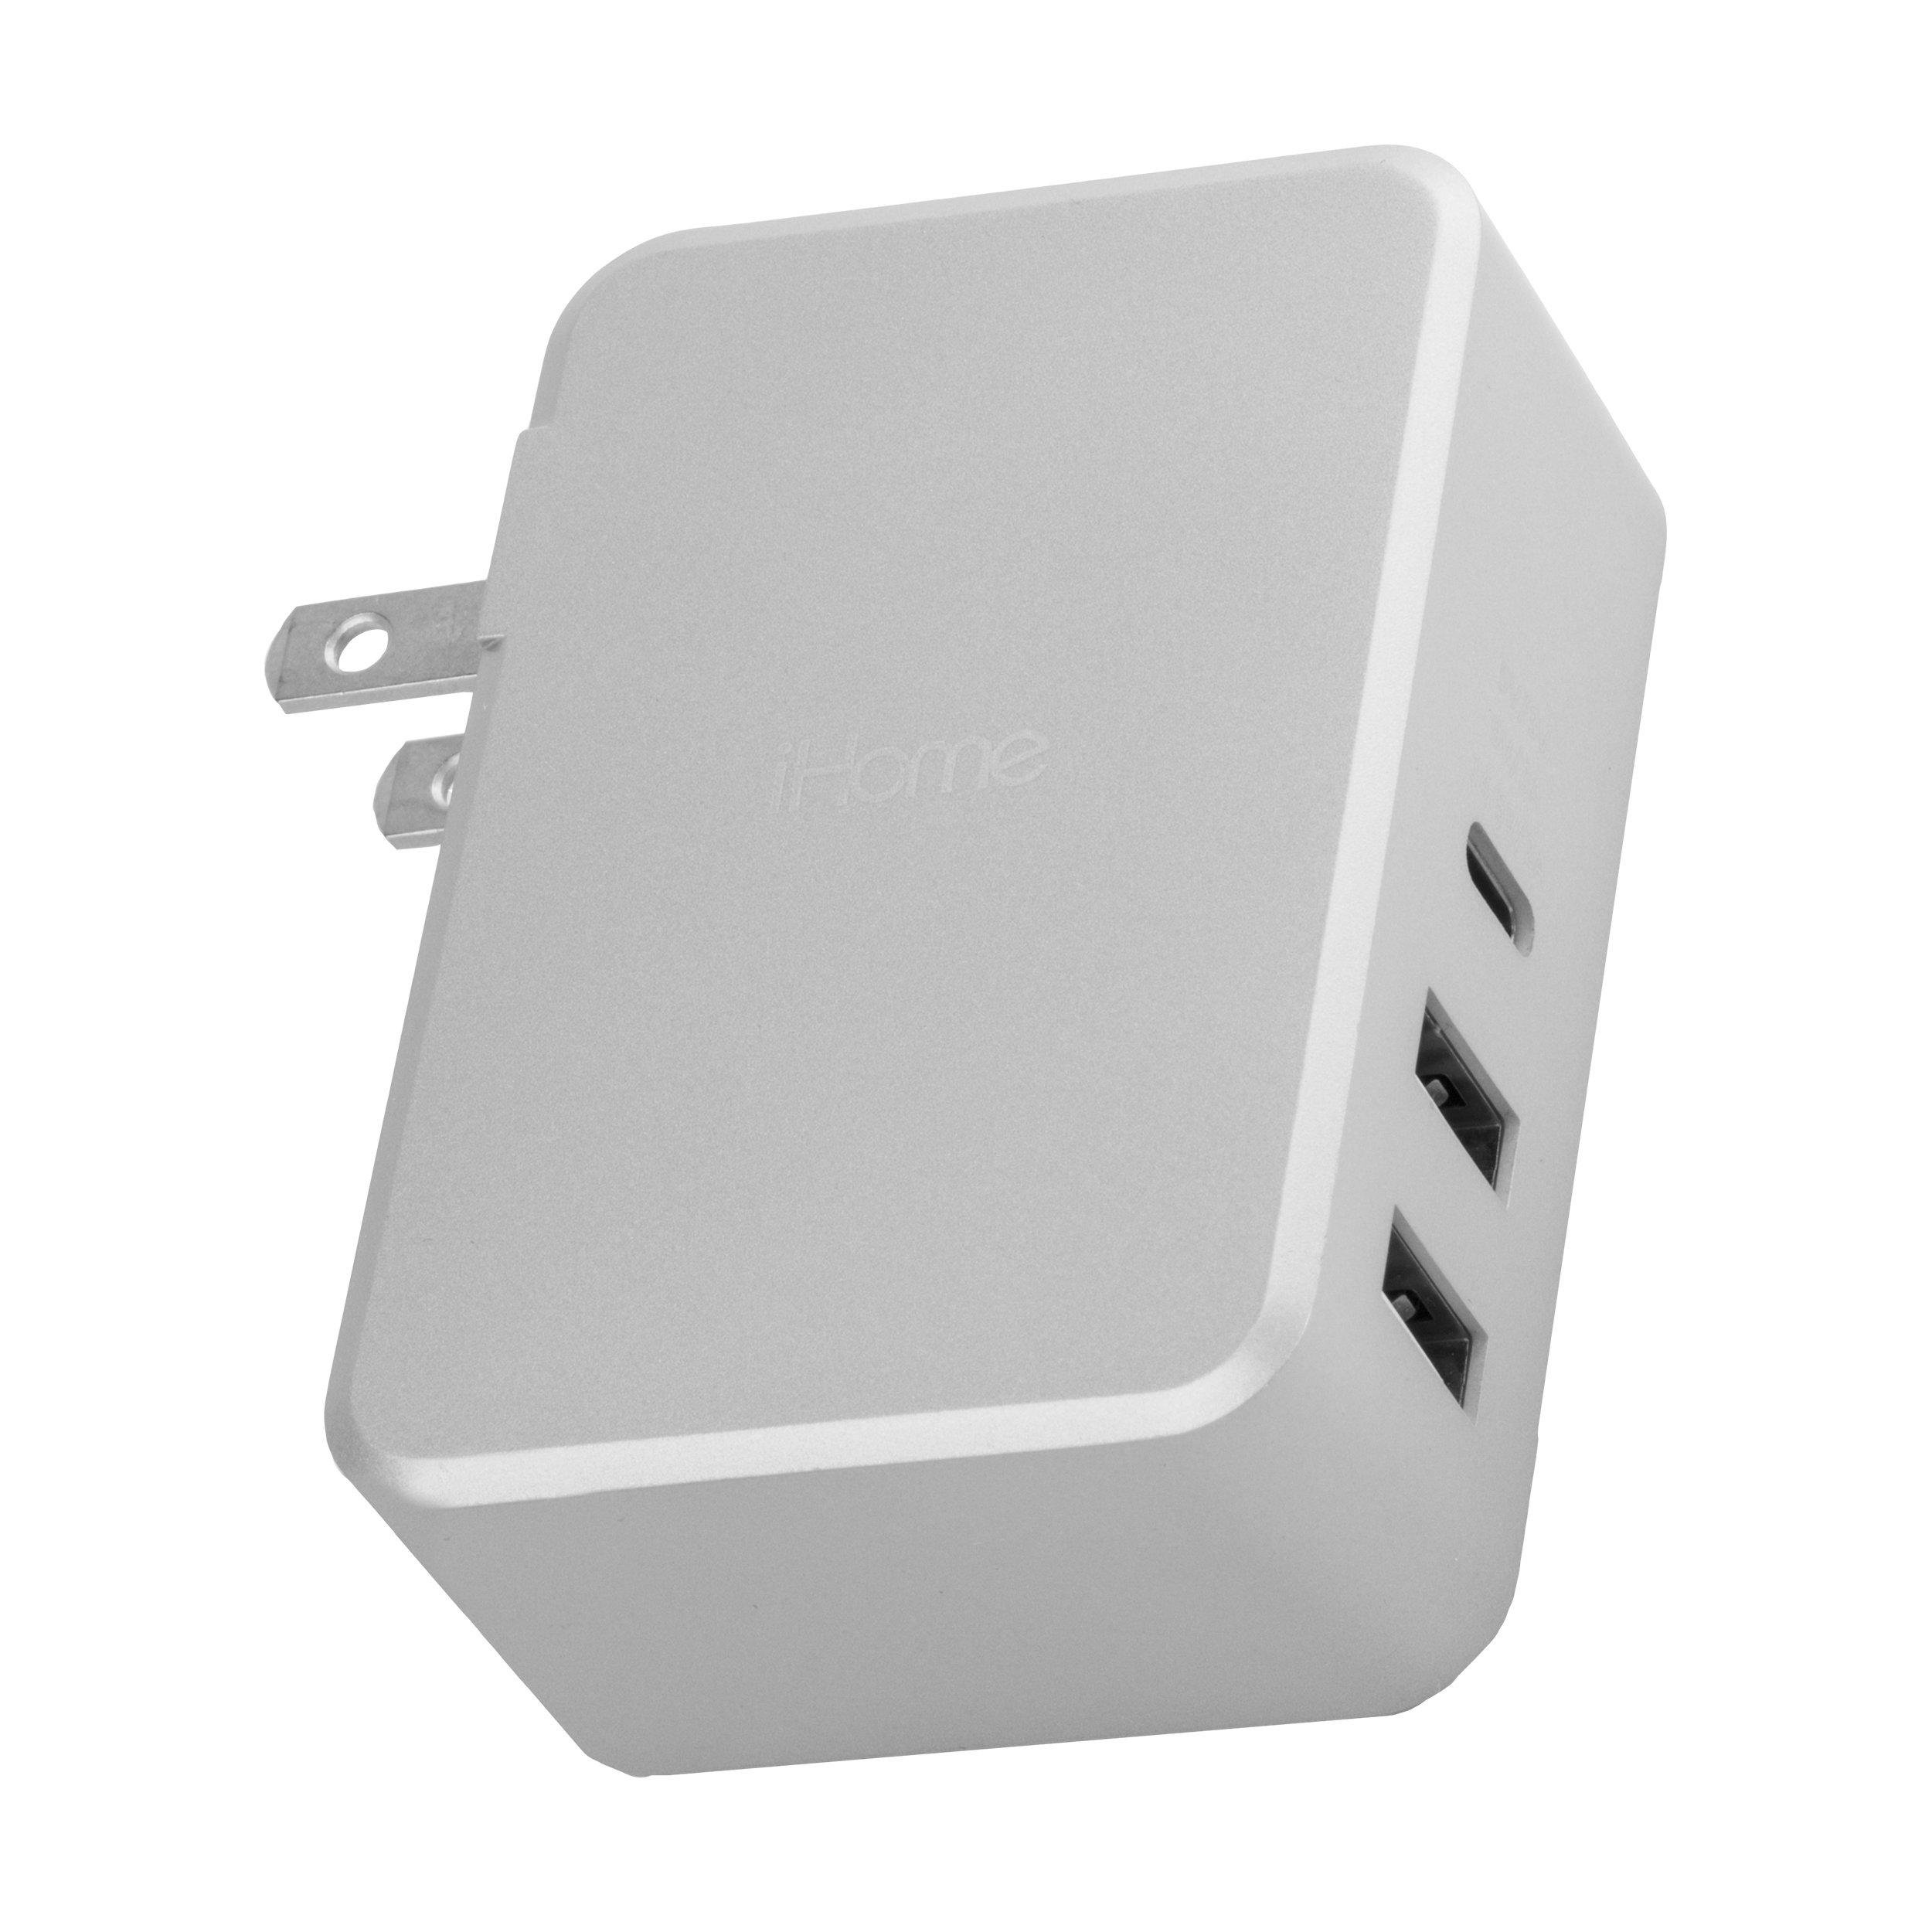 iHome USB Type-C 3-Port 45W Rapid Portable Wall Charger. Power Delivery Port for Apple Macbook, iPhone X/8/8 Plus, Nintendo Switch & More. Includes 6Ft USB-C Braided Cable -Silver by iHome